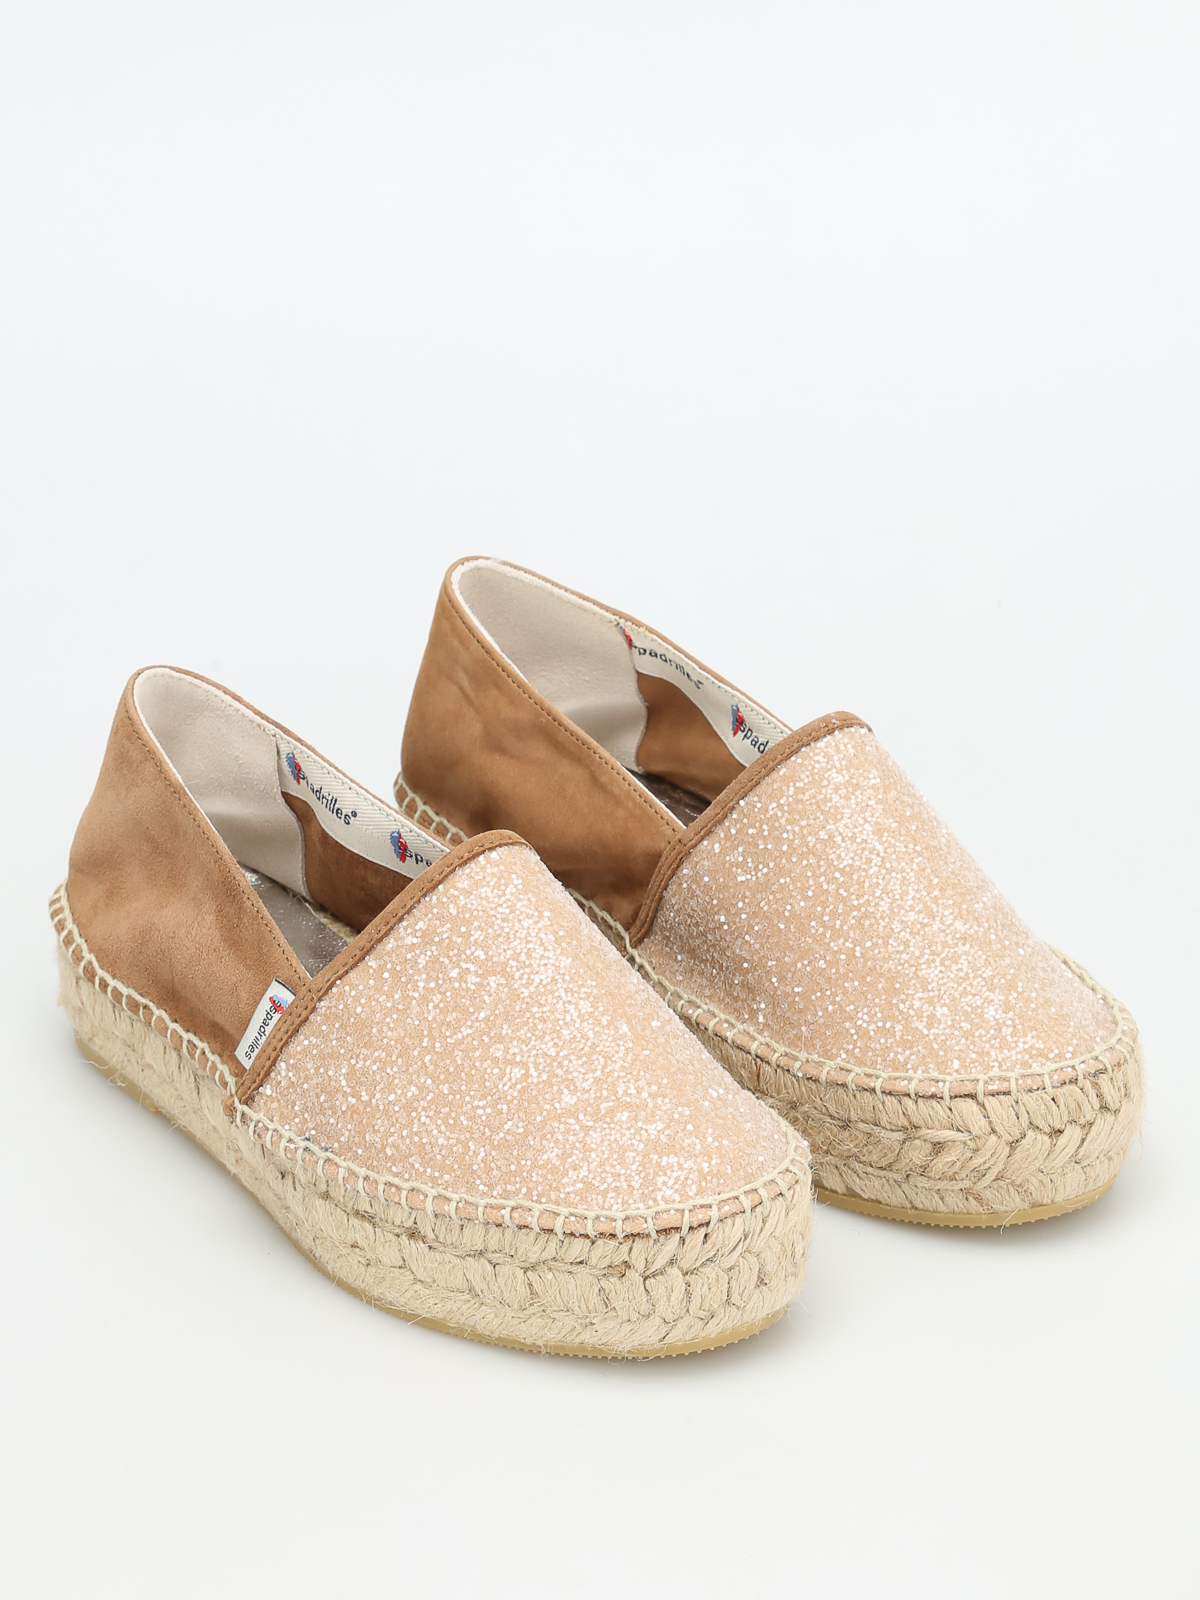 585716a07b7 Tommy sparkling suede espadrilles - ESPADRILLES - Paolo Fiorillo